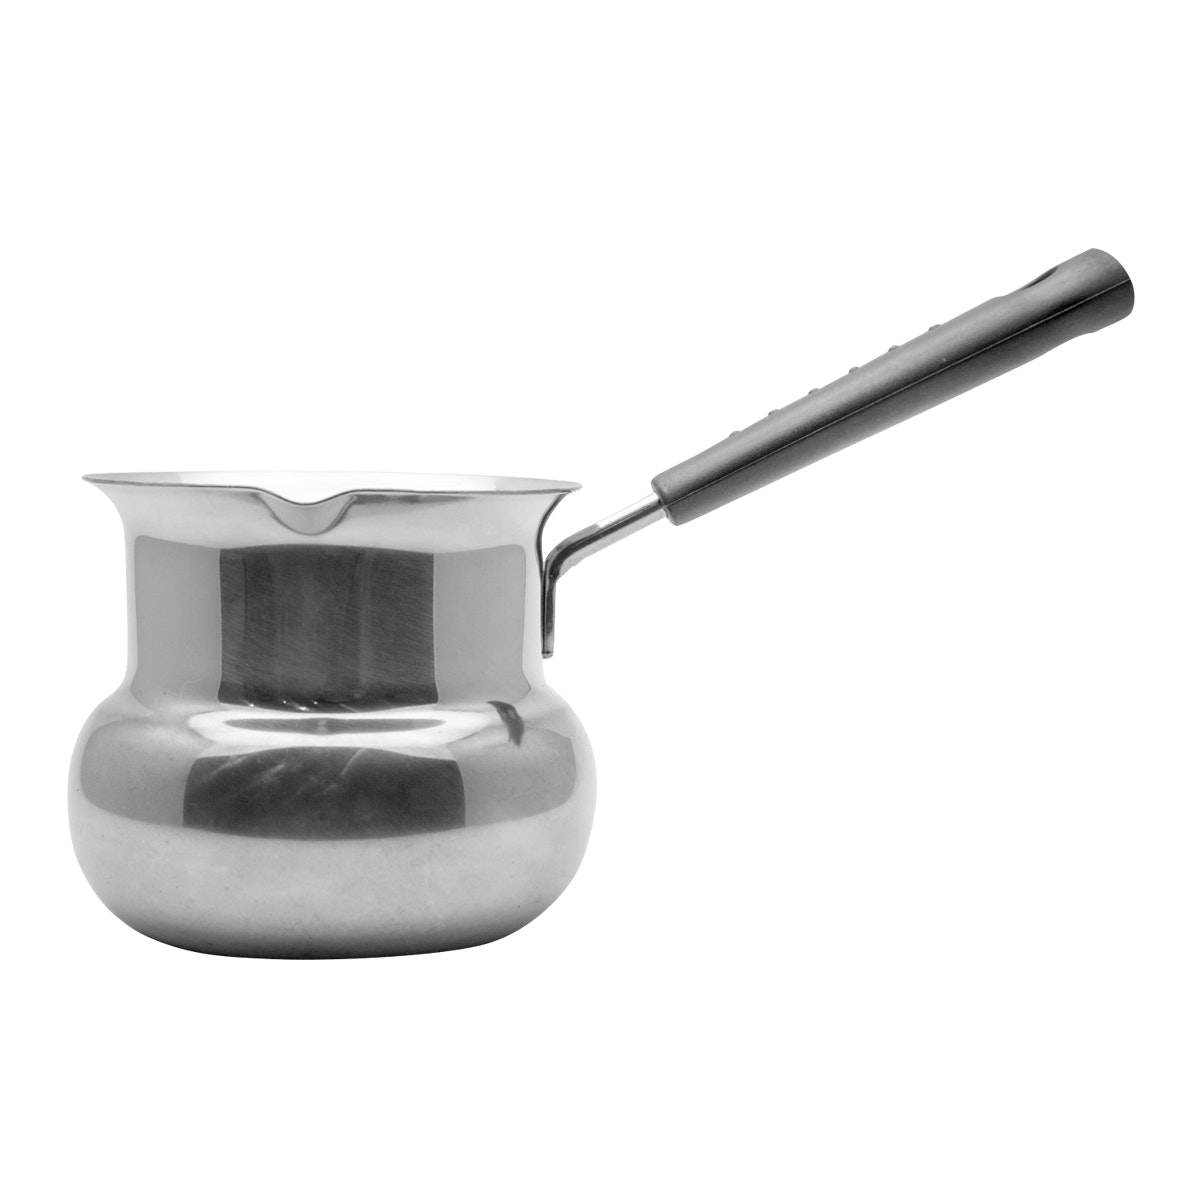 HAN Ibric/Ibrik/Turkish Coffee Maker/Panci Mini Stainless Handle Bakelite Tebal Model Drum IBRD 540 Ml